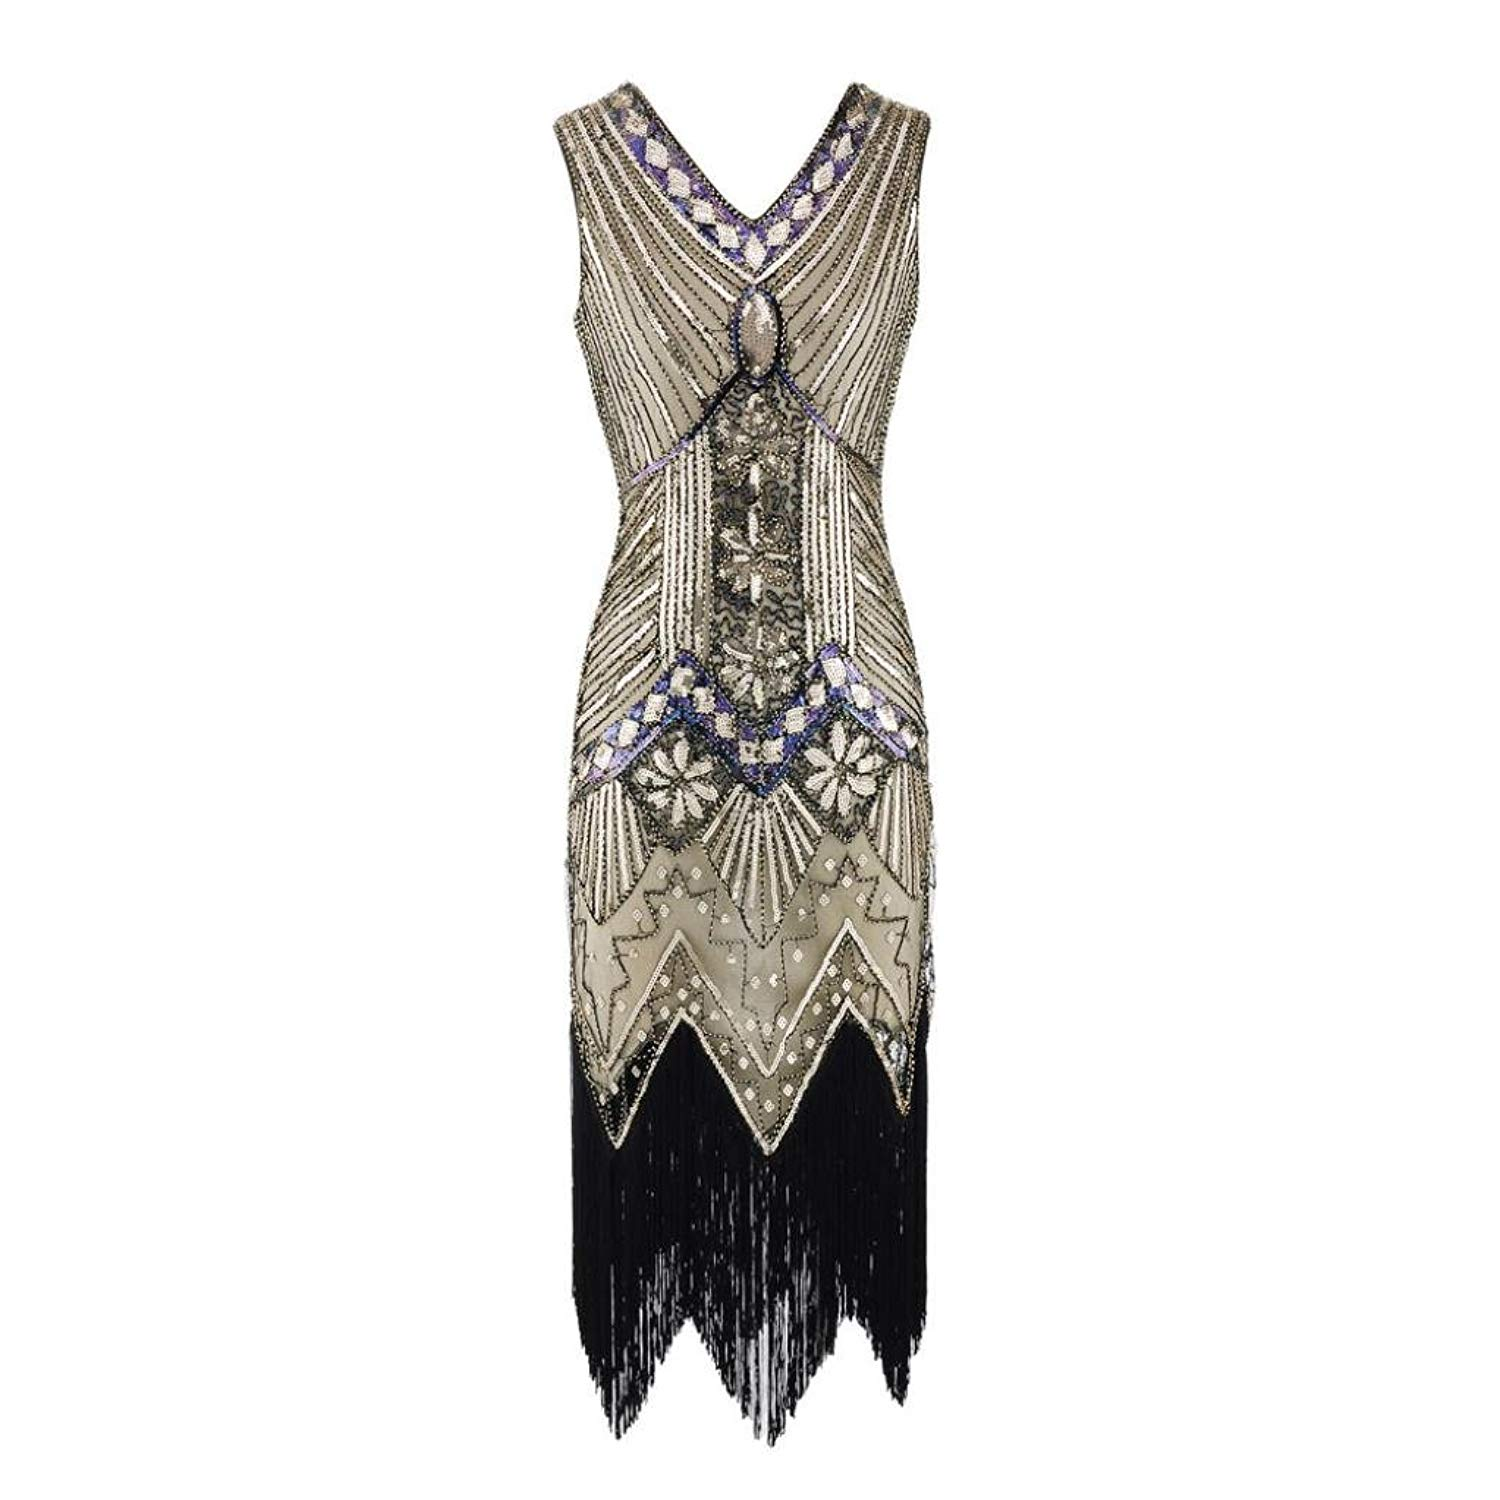 2295e006c41 Get Quotations · Ankola Long Prom Dress Women s Flapper Dresses Vintage  1920s V Neck Beaded Fringed Lace Tassels Hem